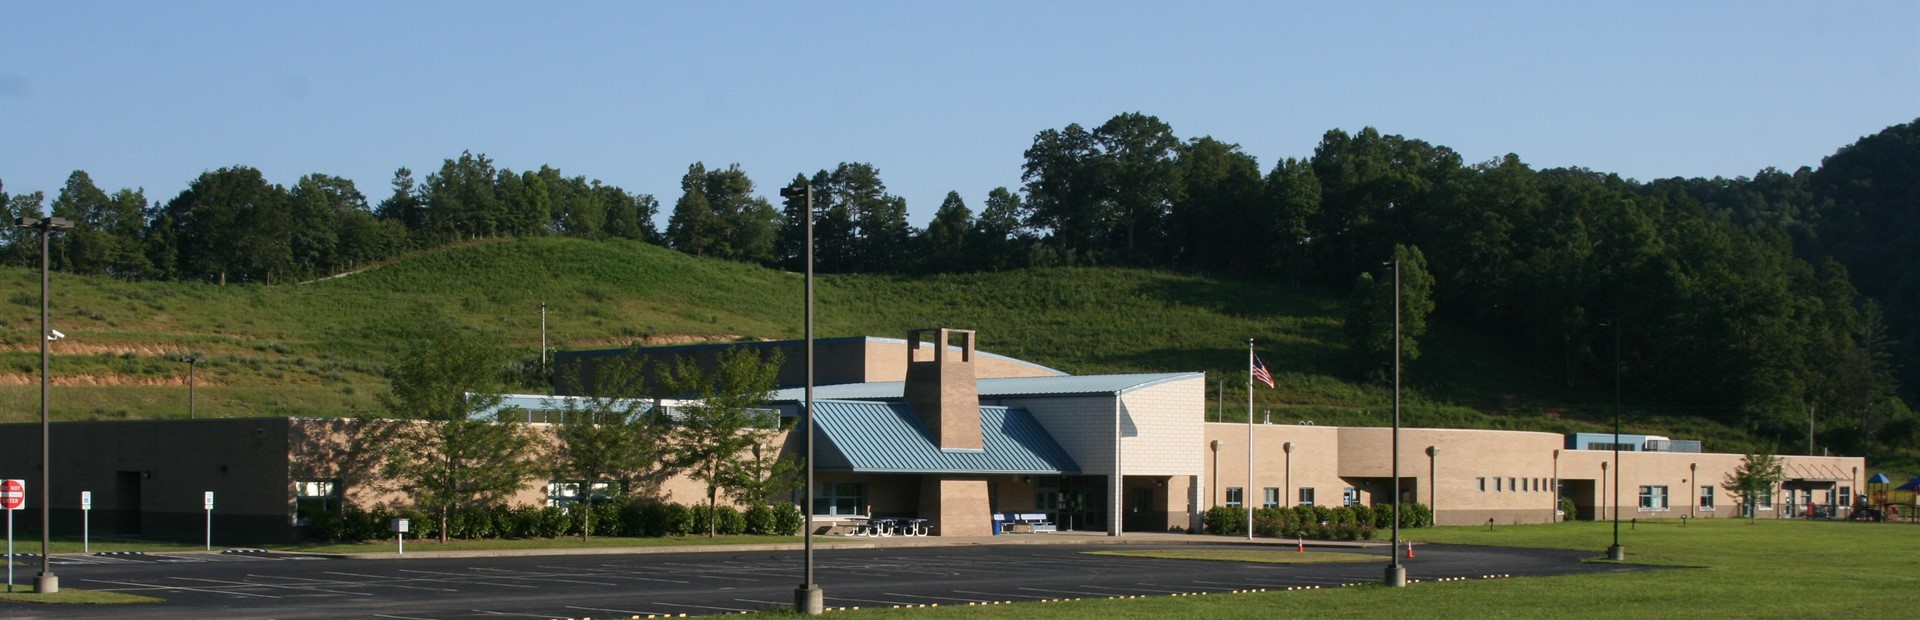 South Magoffin Elementary